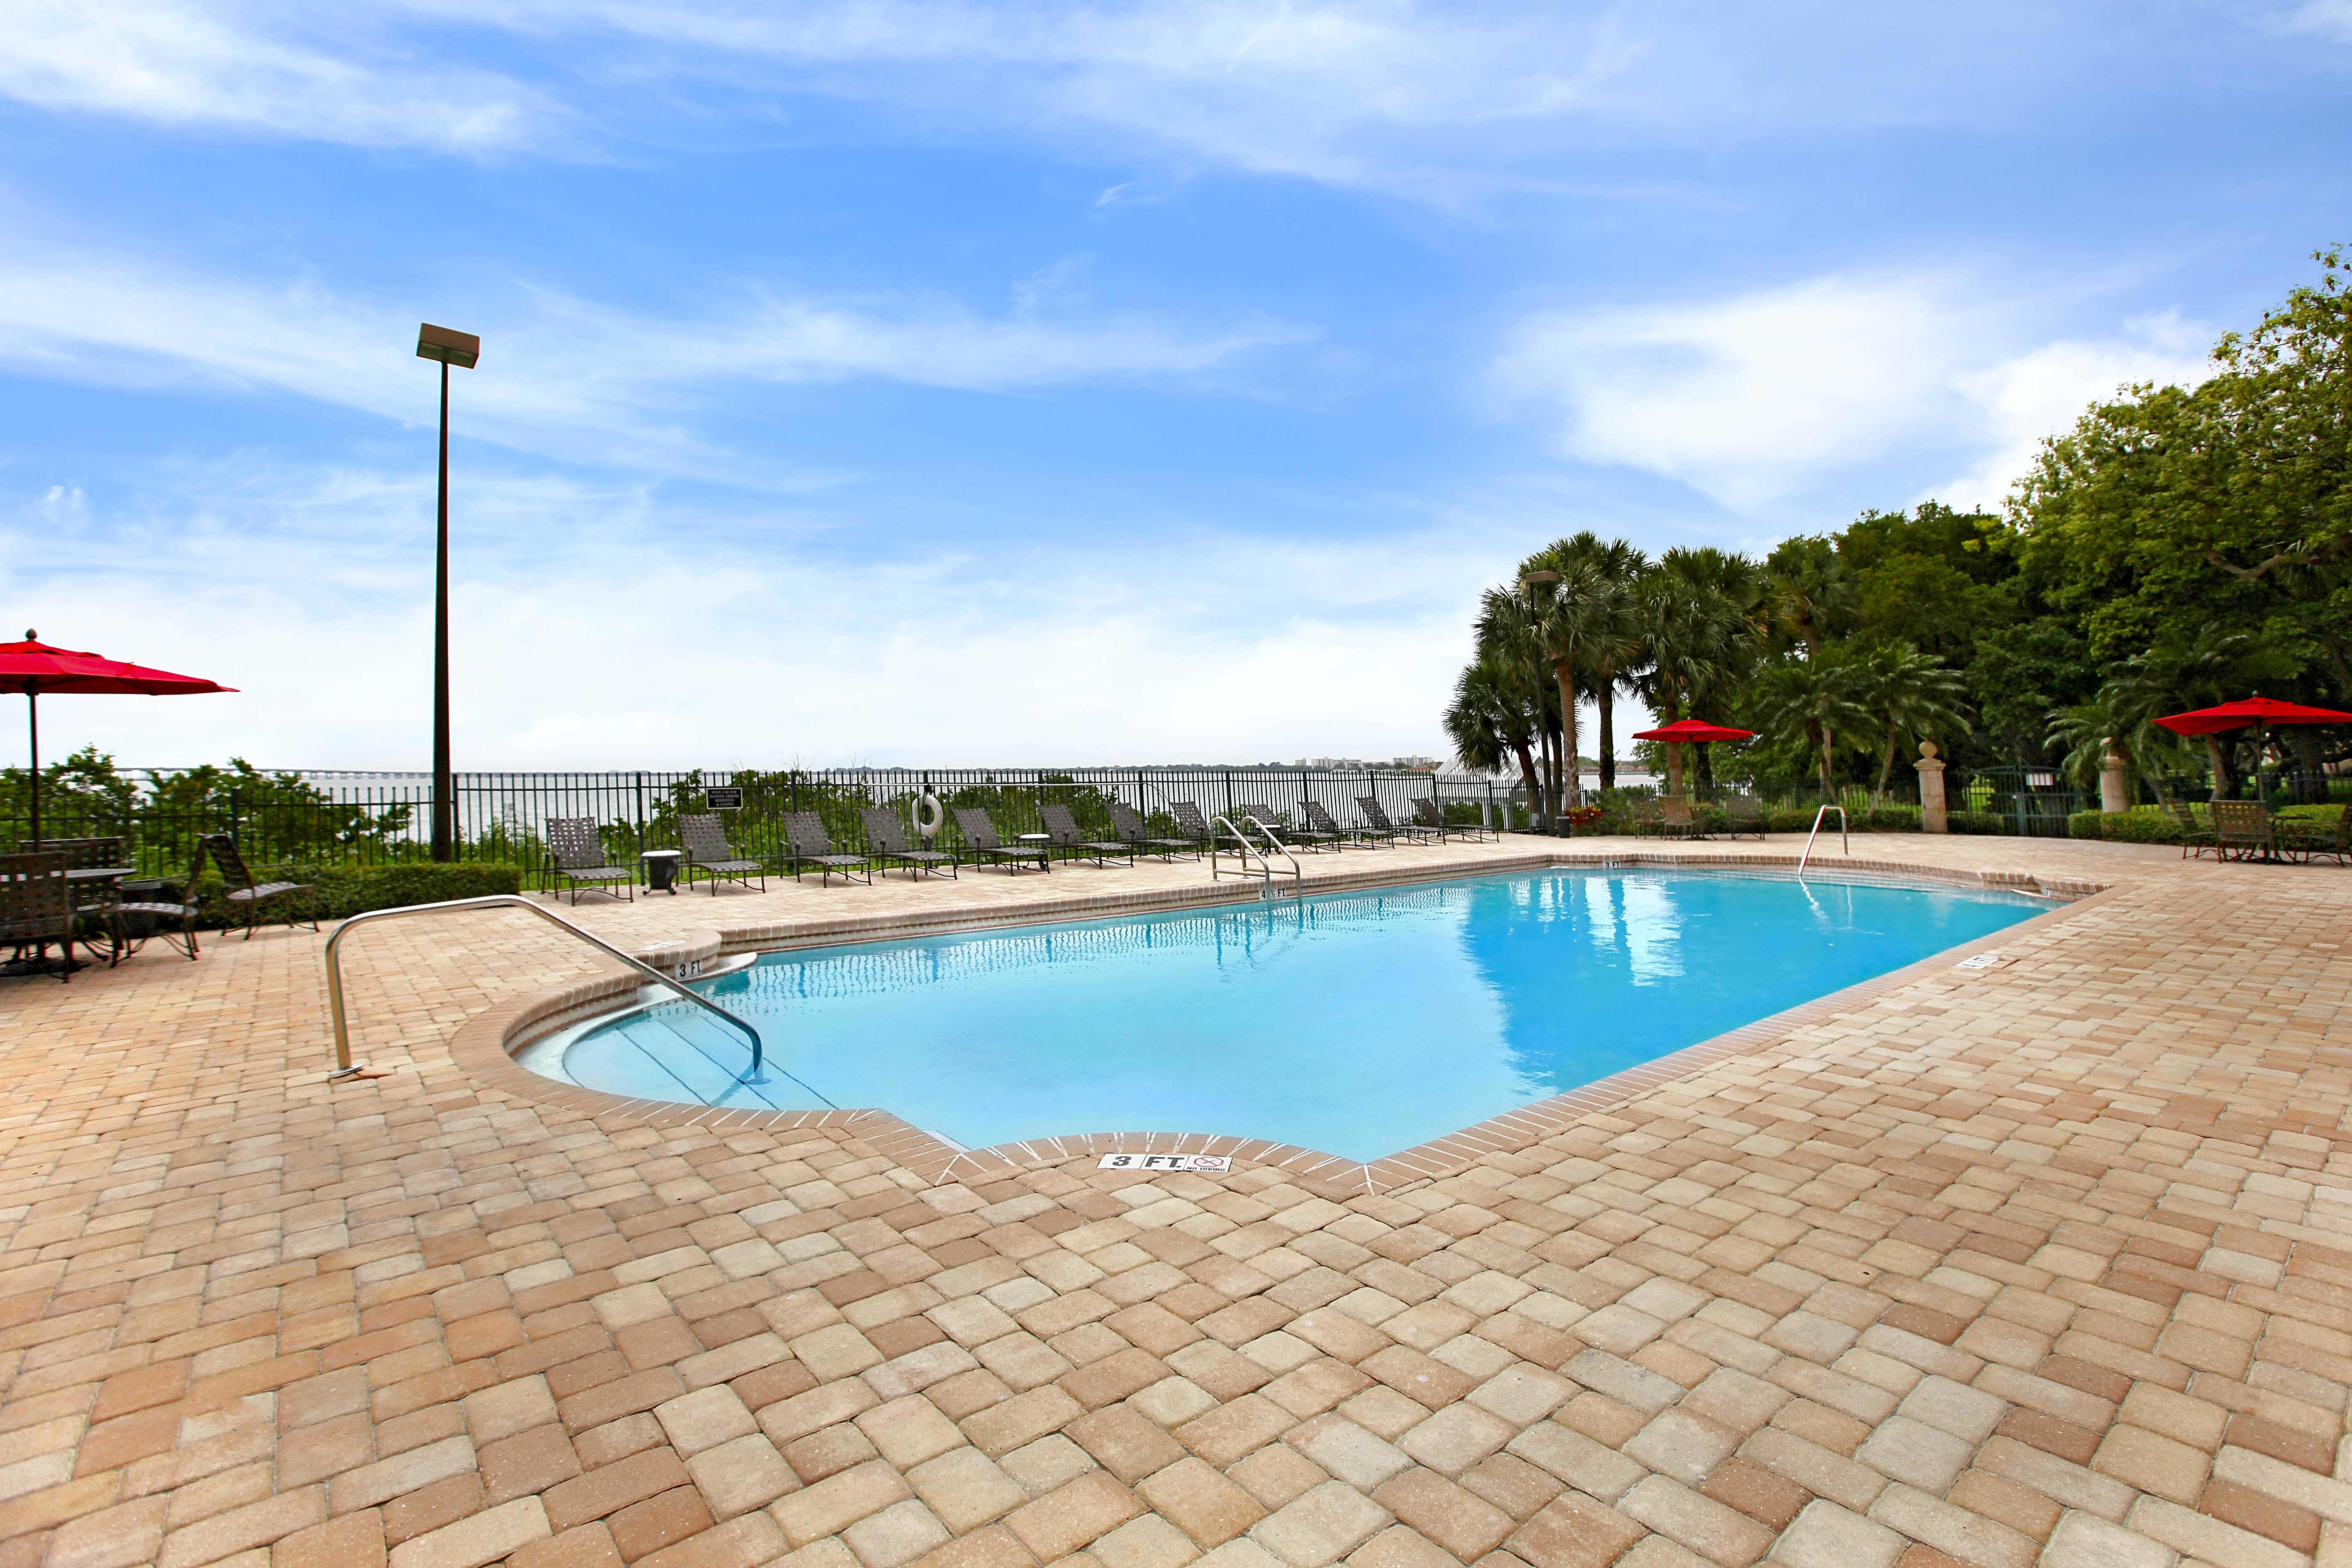 Apartments Near CCC Bayside Arbors for Clearwater Christian College Students in Clearwater, FL